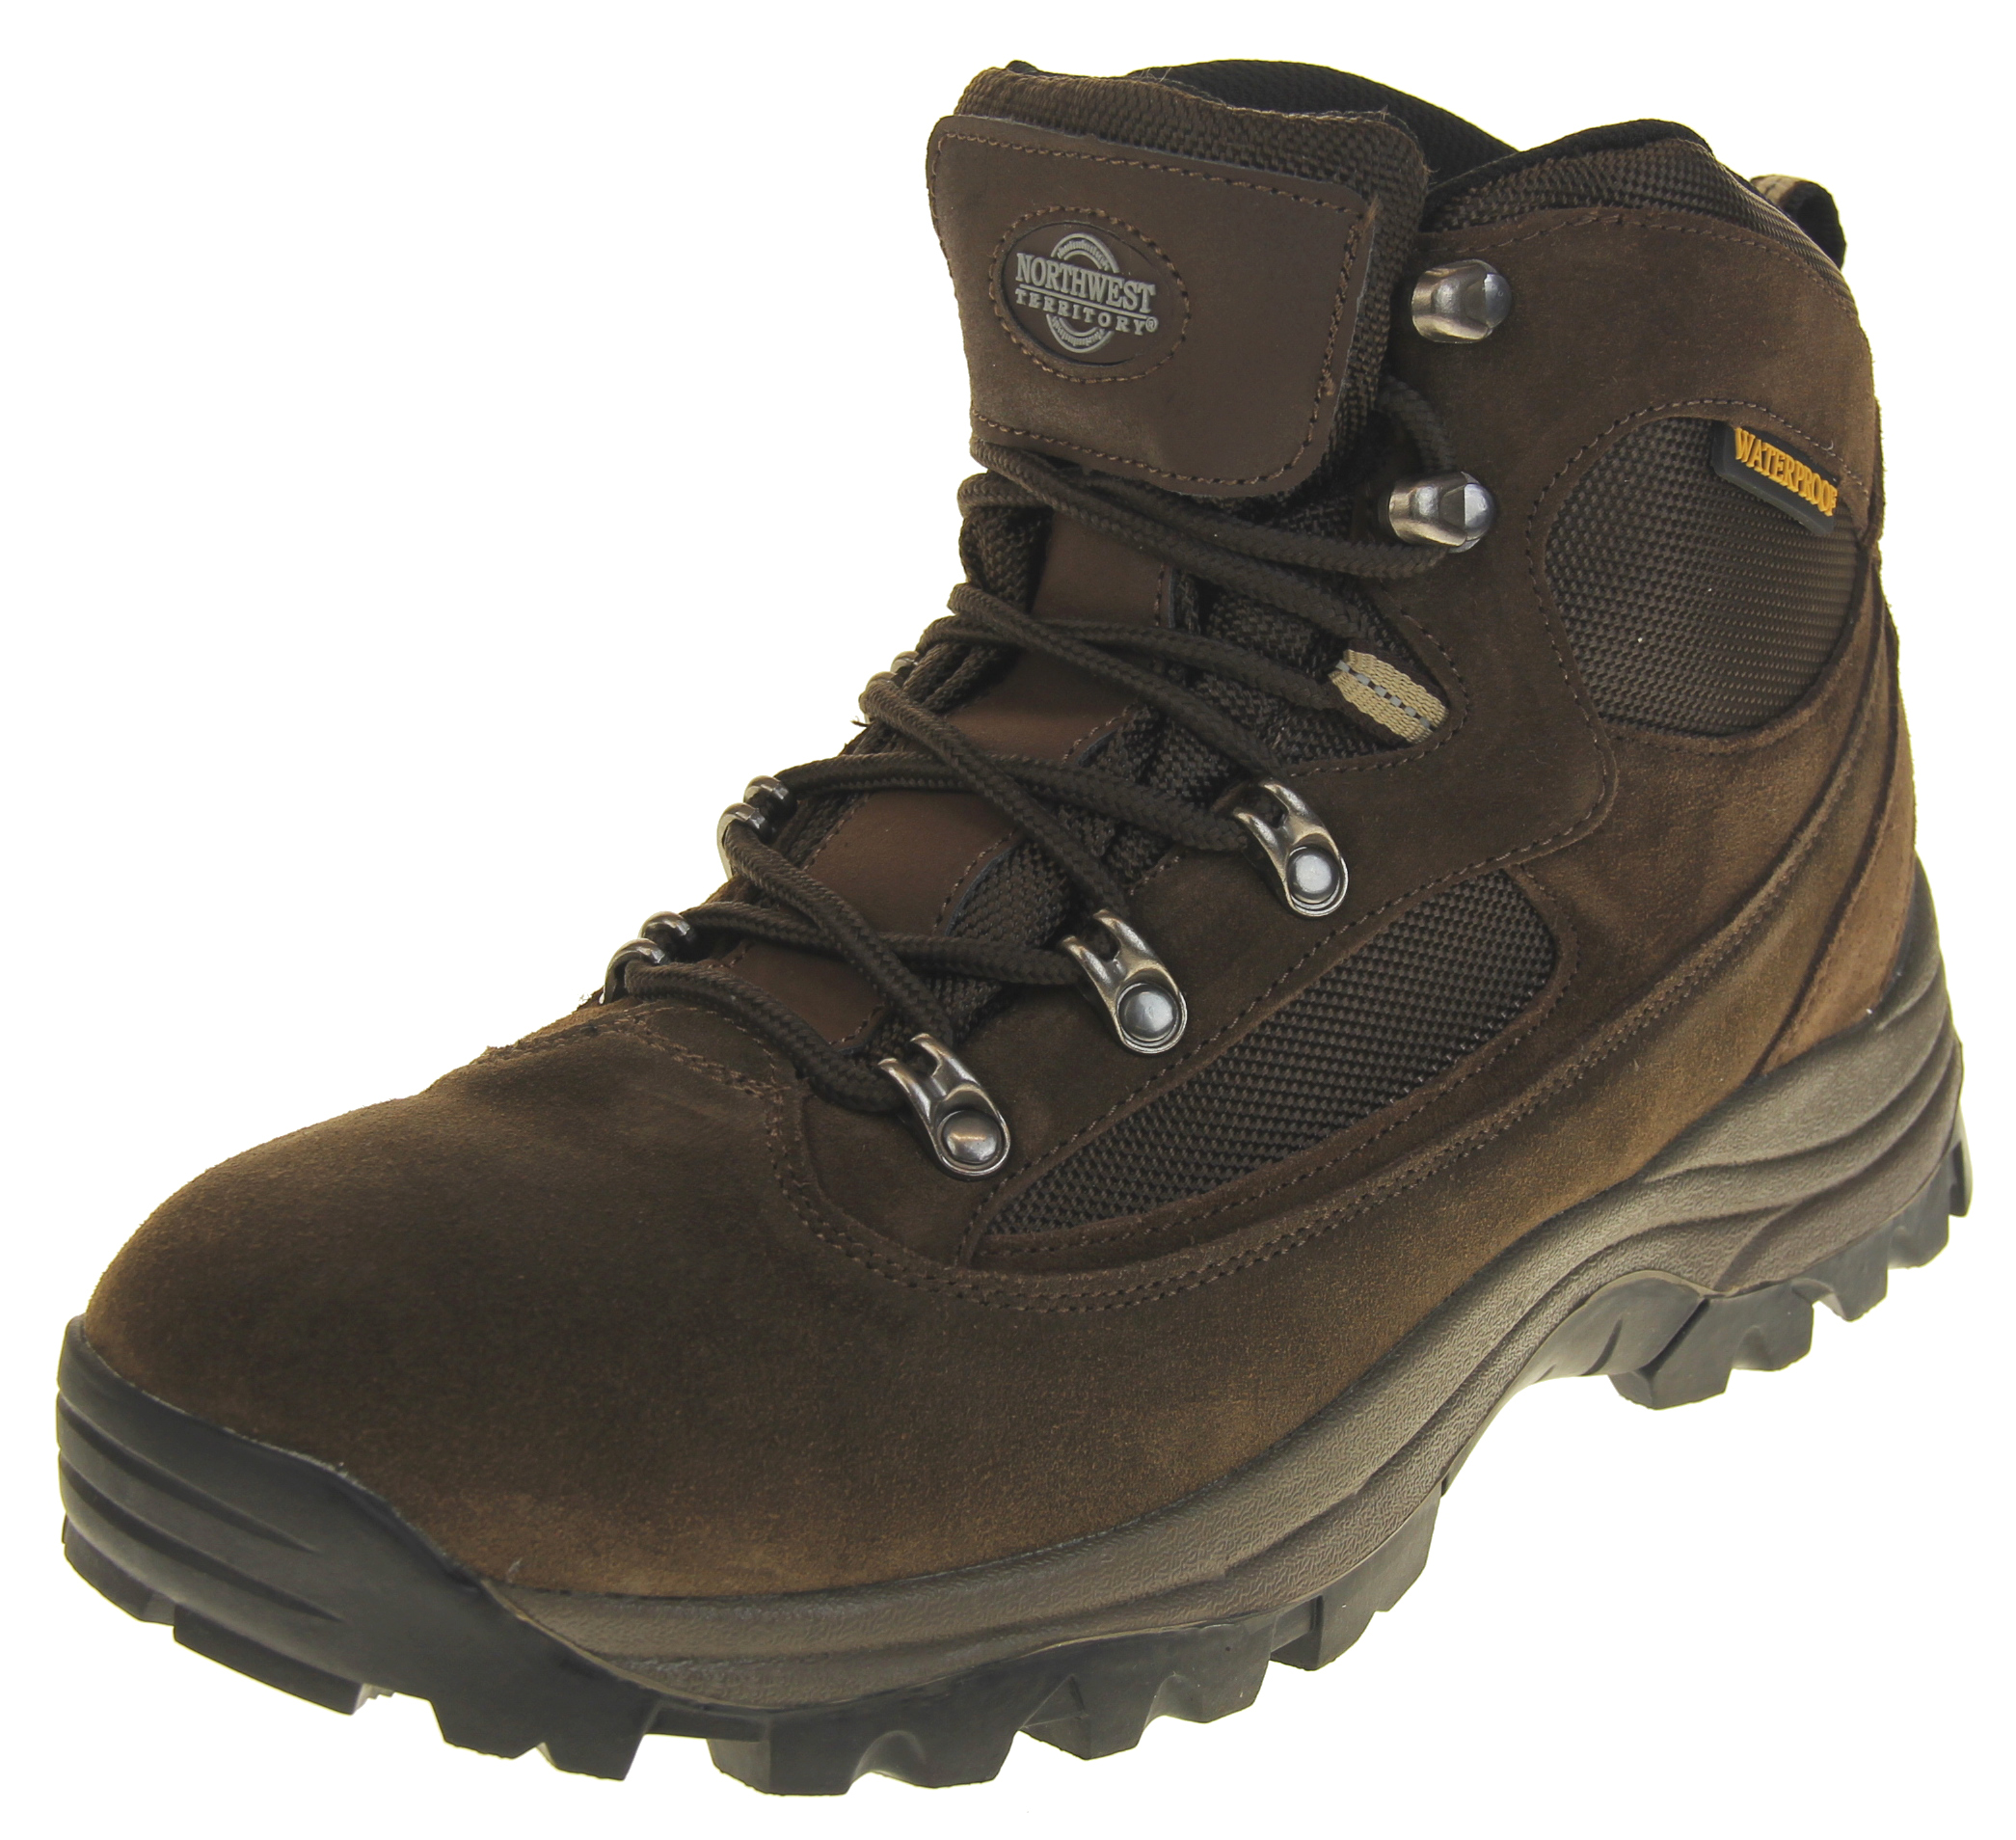 4109b7d3191 Mens Suede Northwest Territory Steel Toe Capped Waterproof Safety Work Boots